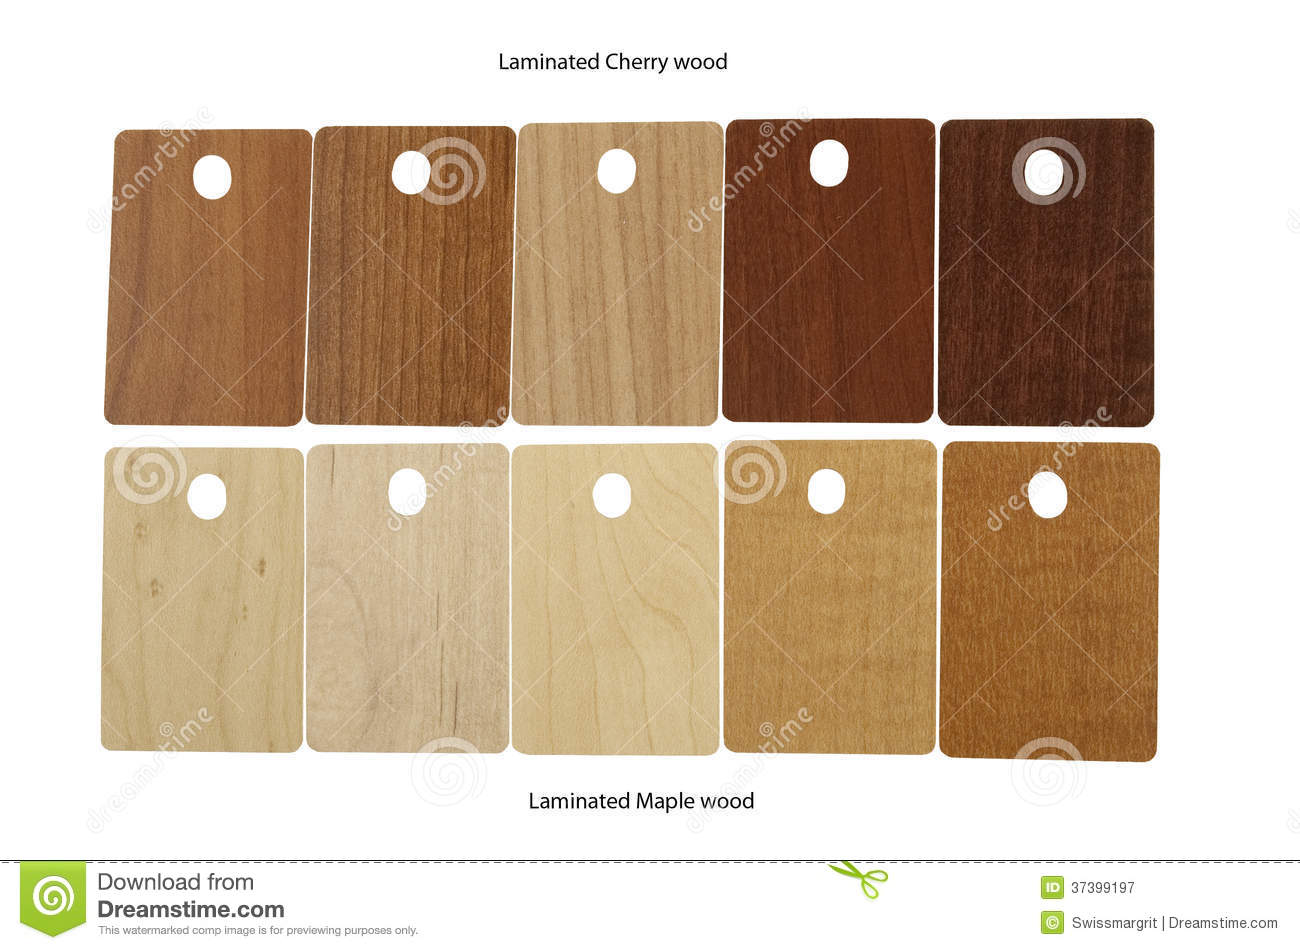 Color guide of laminated Cherry wood and Maple wood for architecture ...